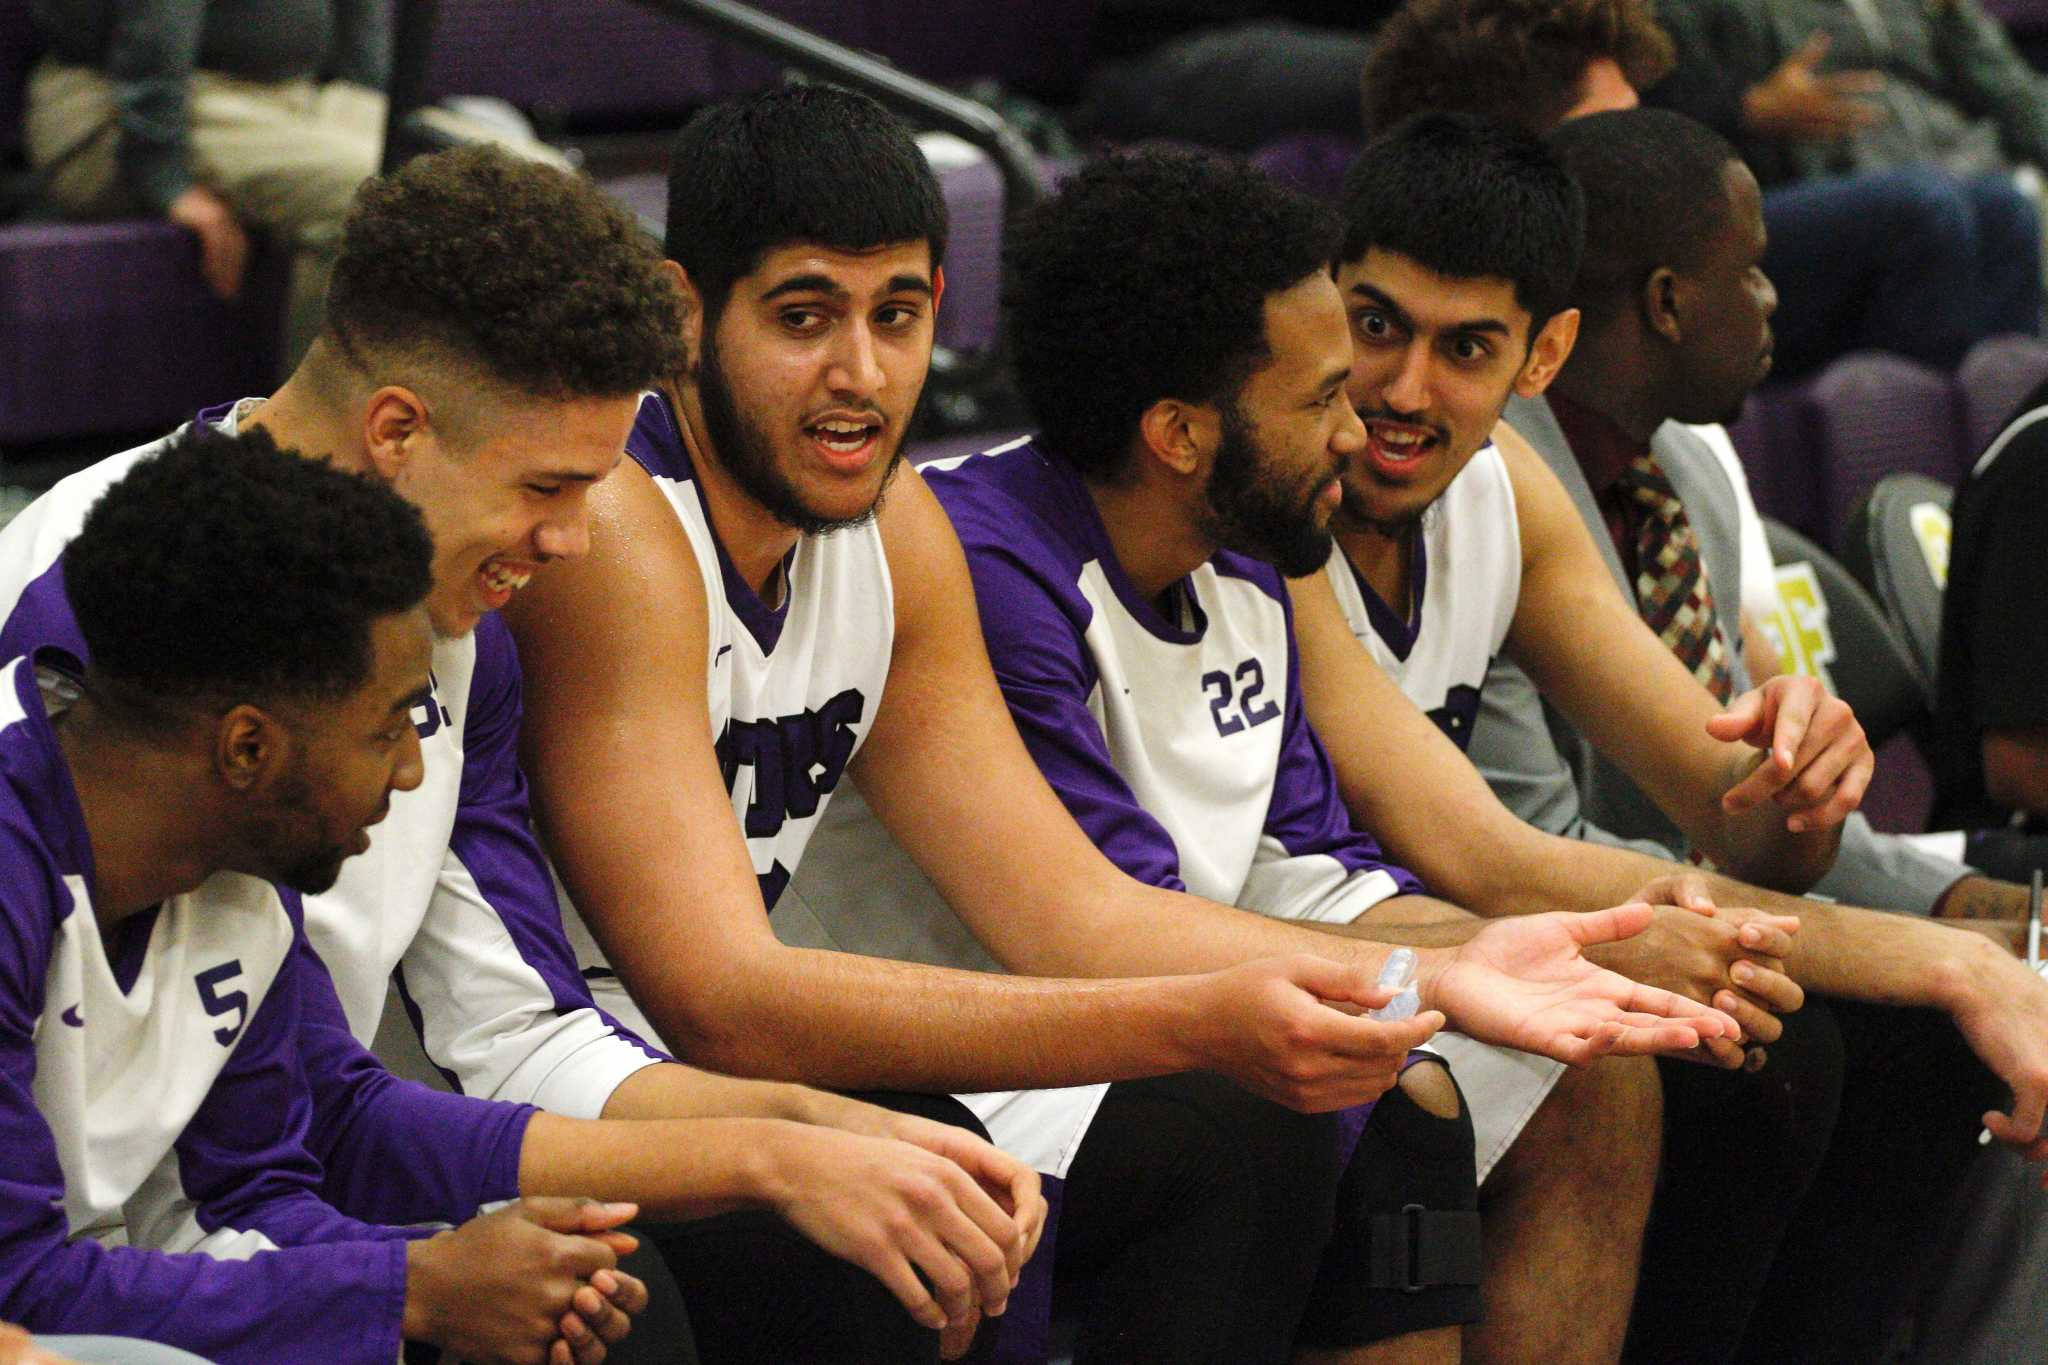 The SF State Gators talk amongst each other on the bench during their match up against the Sonoma State Seawolves at SF State on Saturday, January 21, 2017 (Mason Rockfellow/ Xpress).